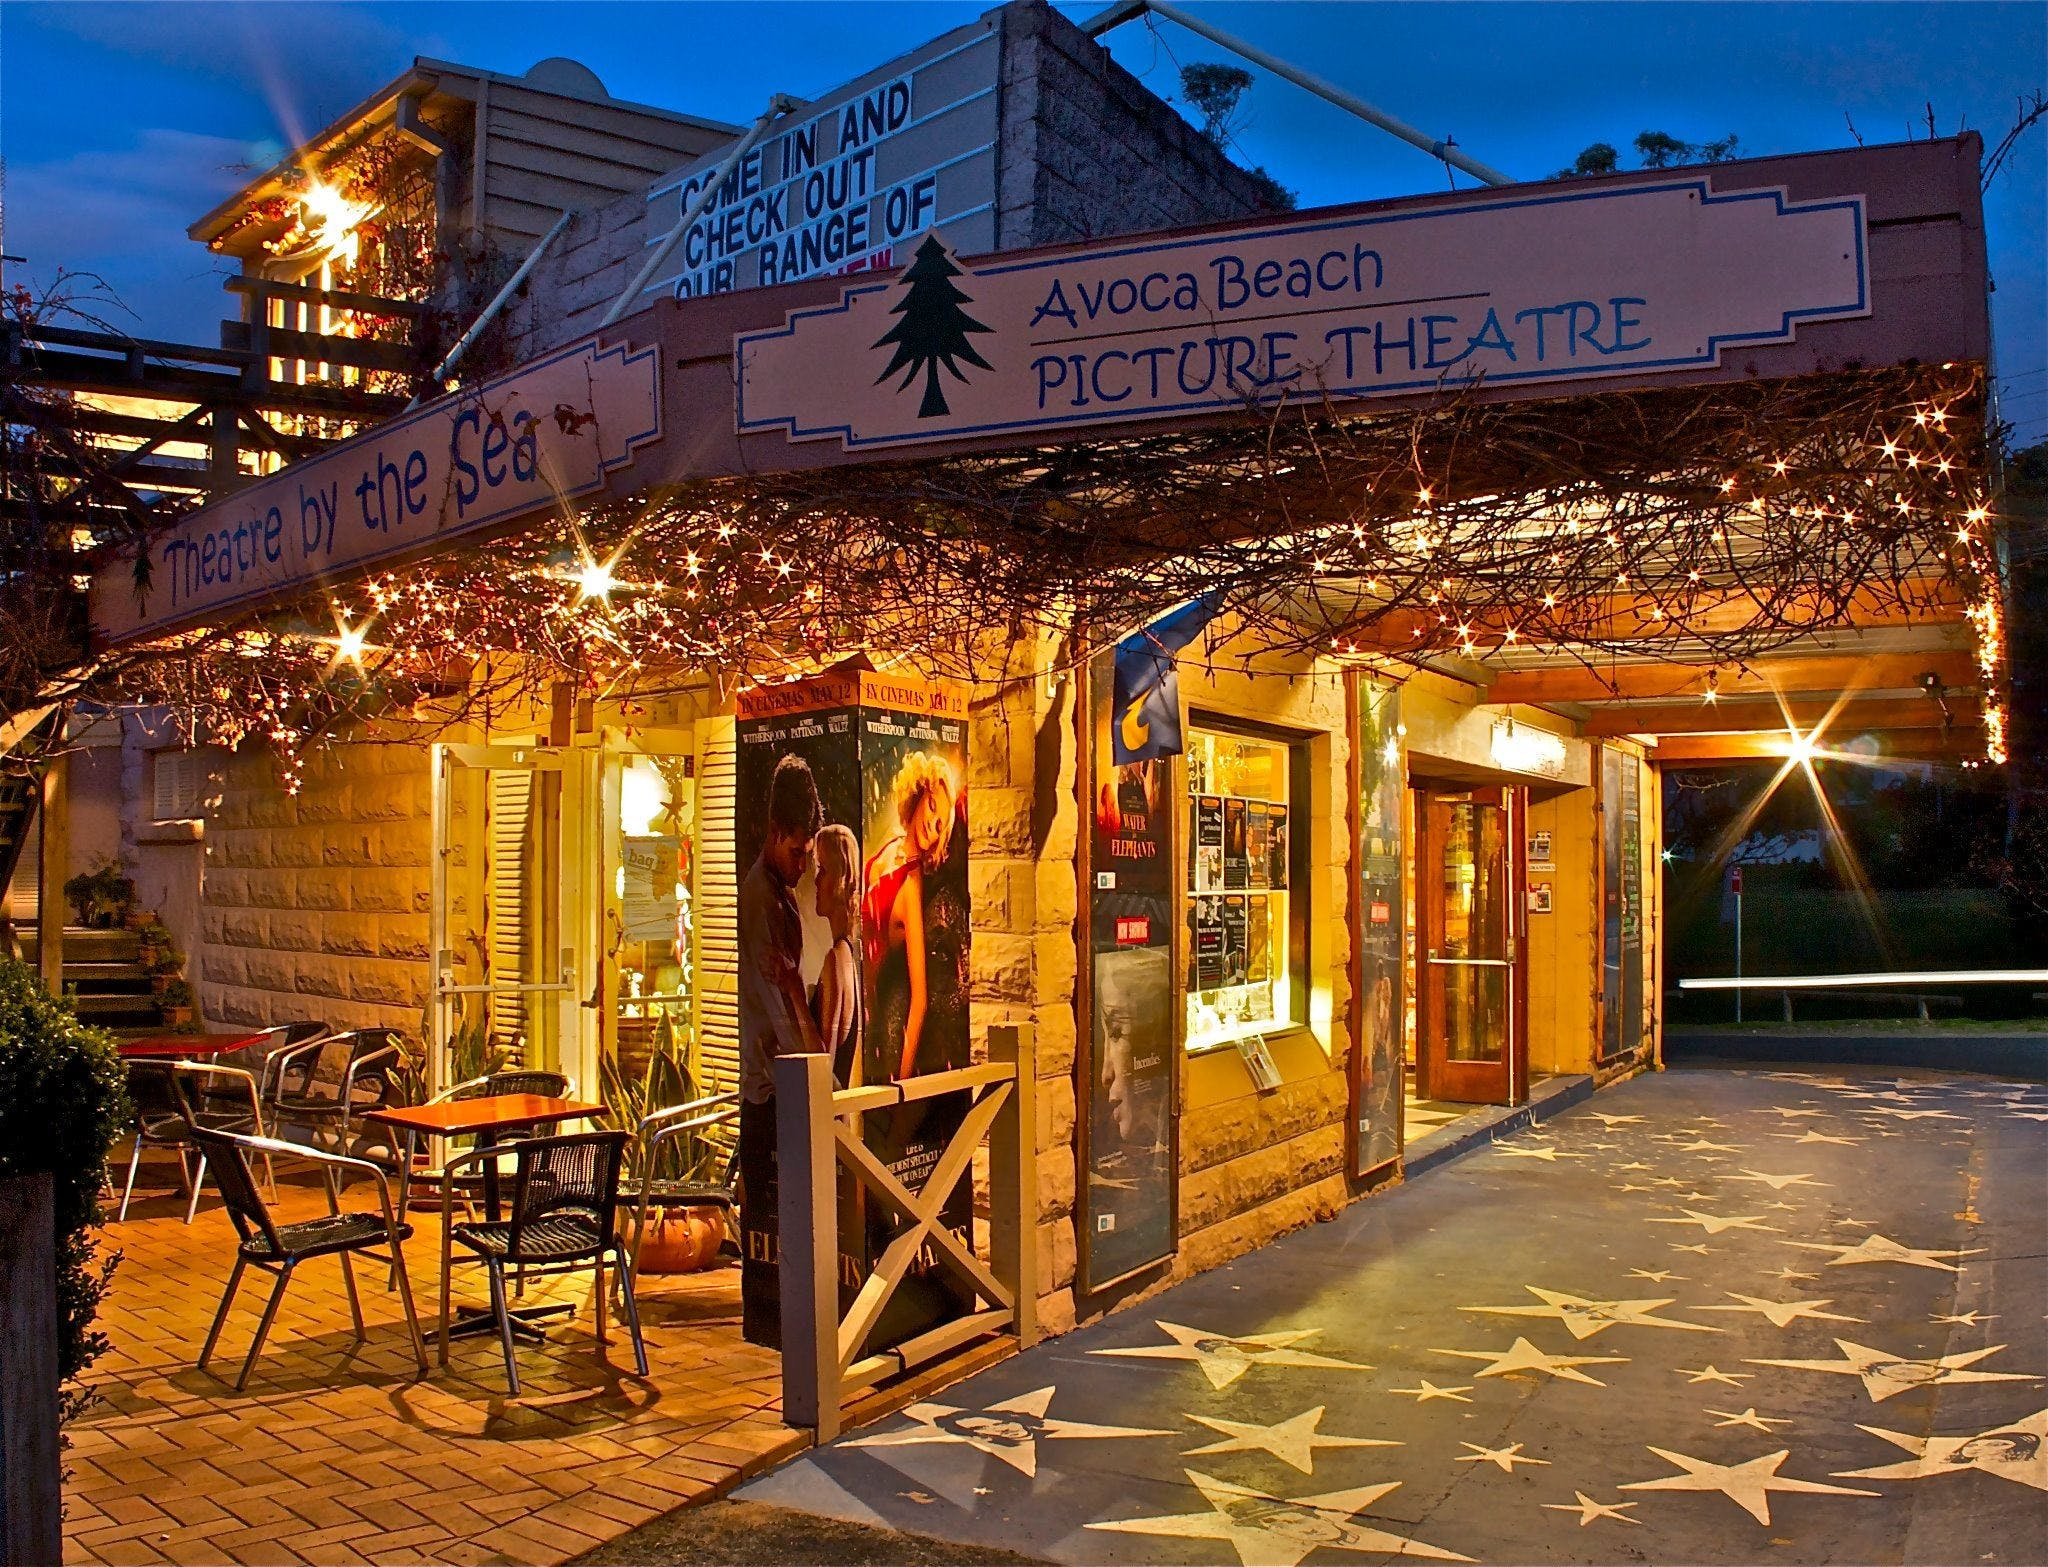 Avoca Beach Picture Theatre - St Kilda Accommodation